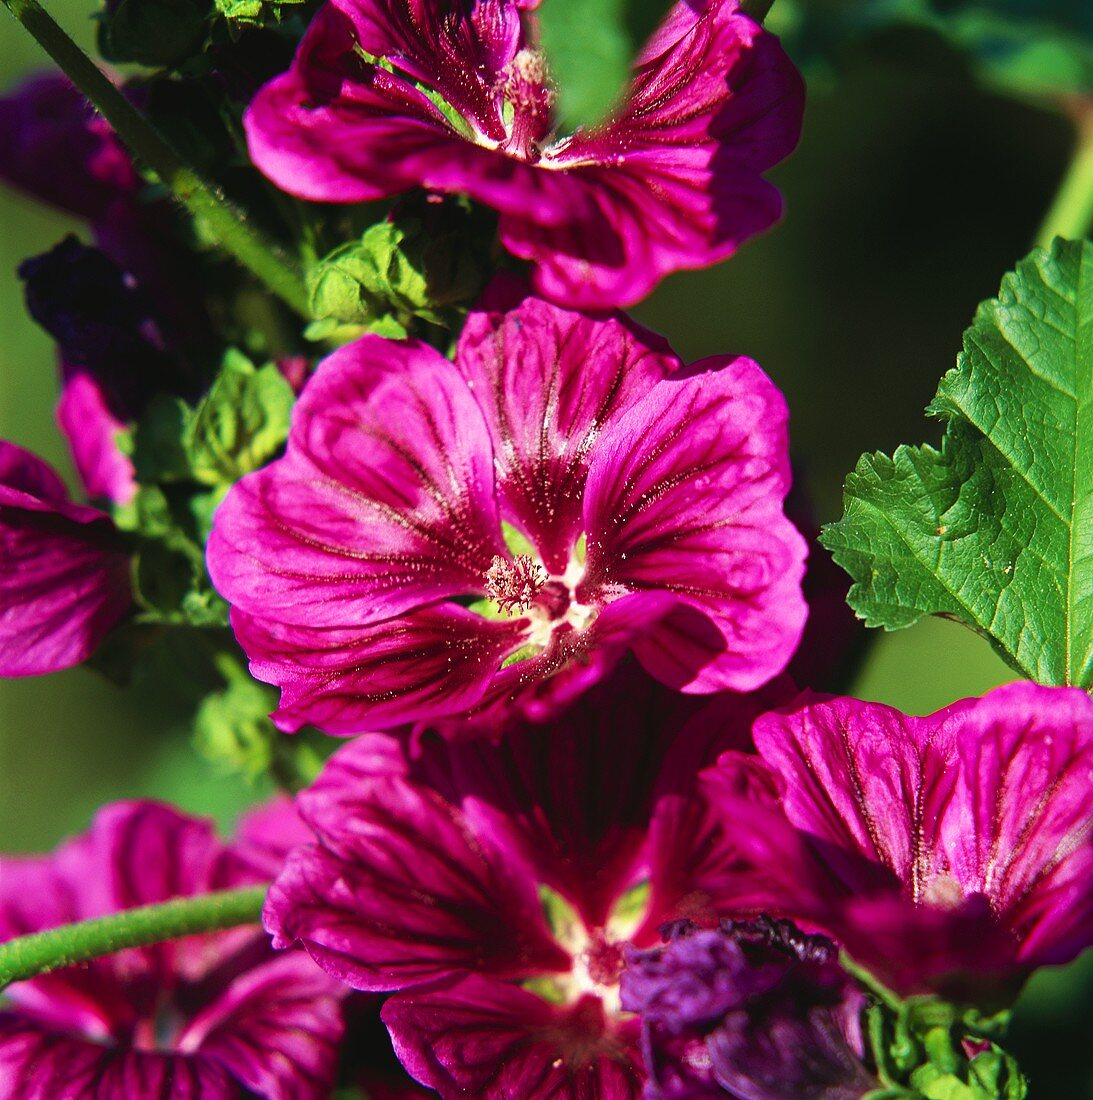 Violet mallow flowers (close-up)